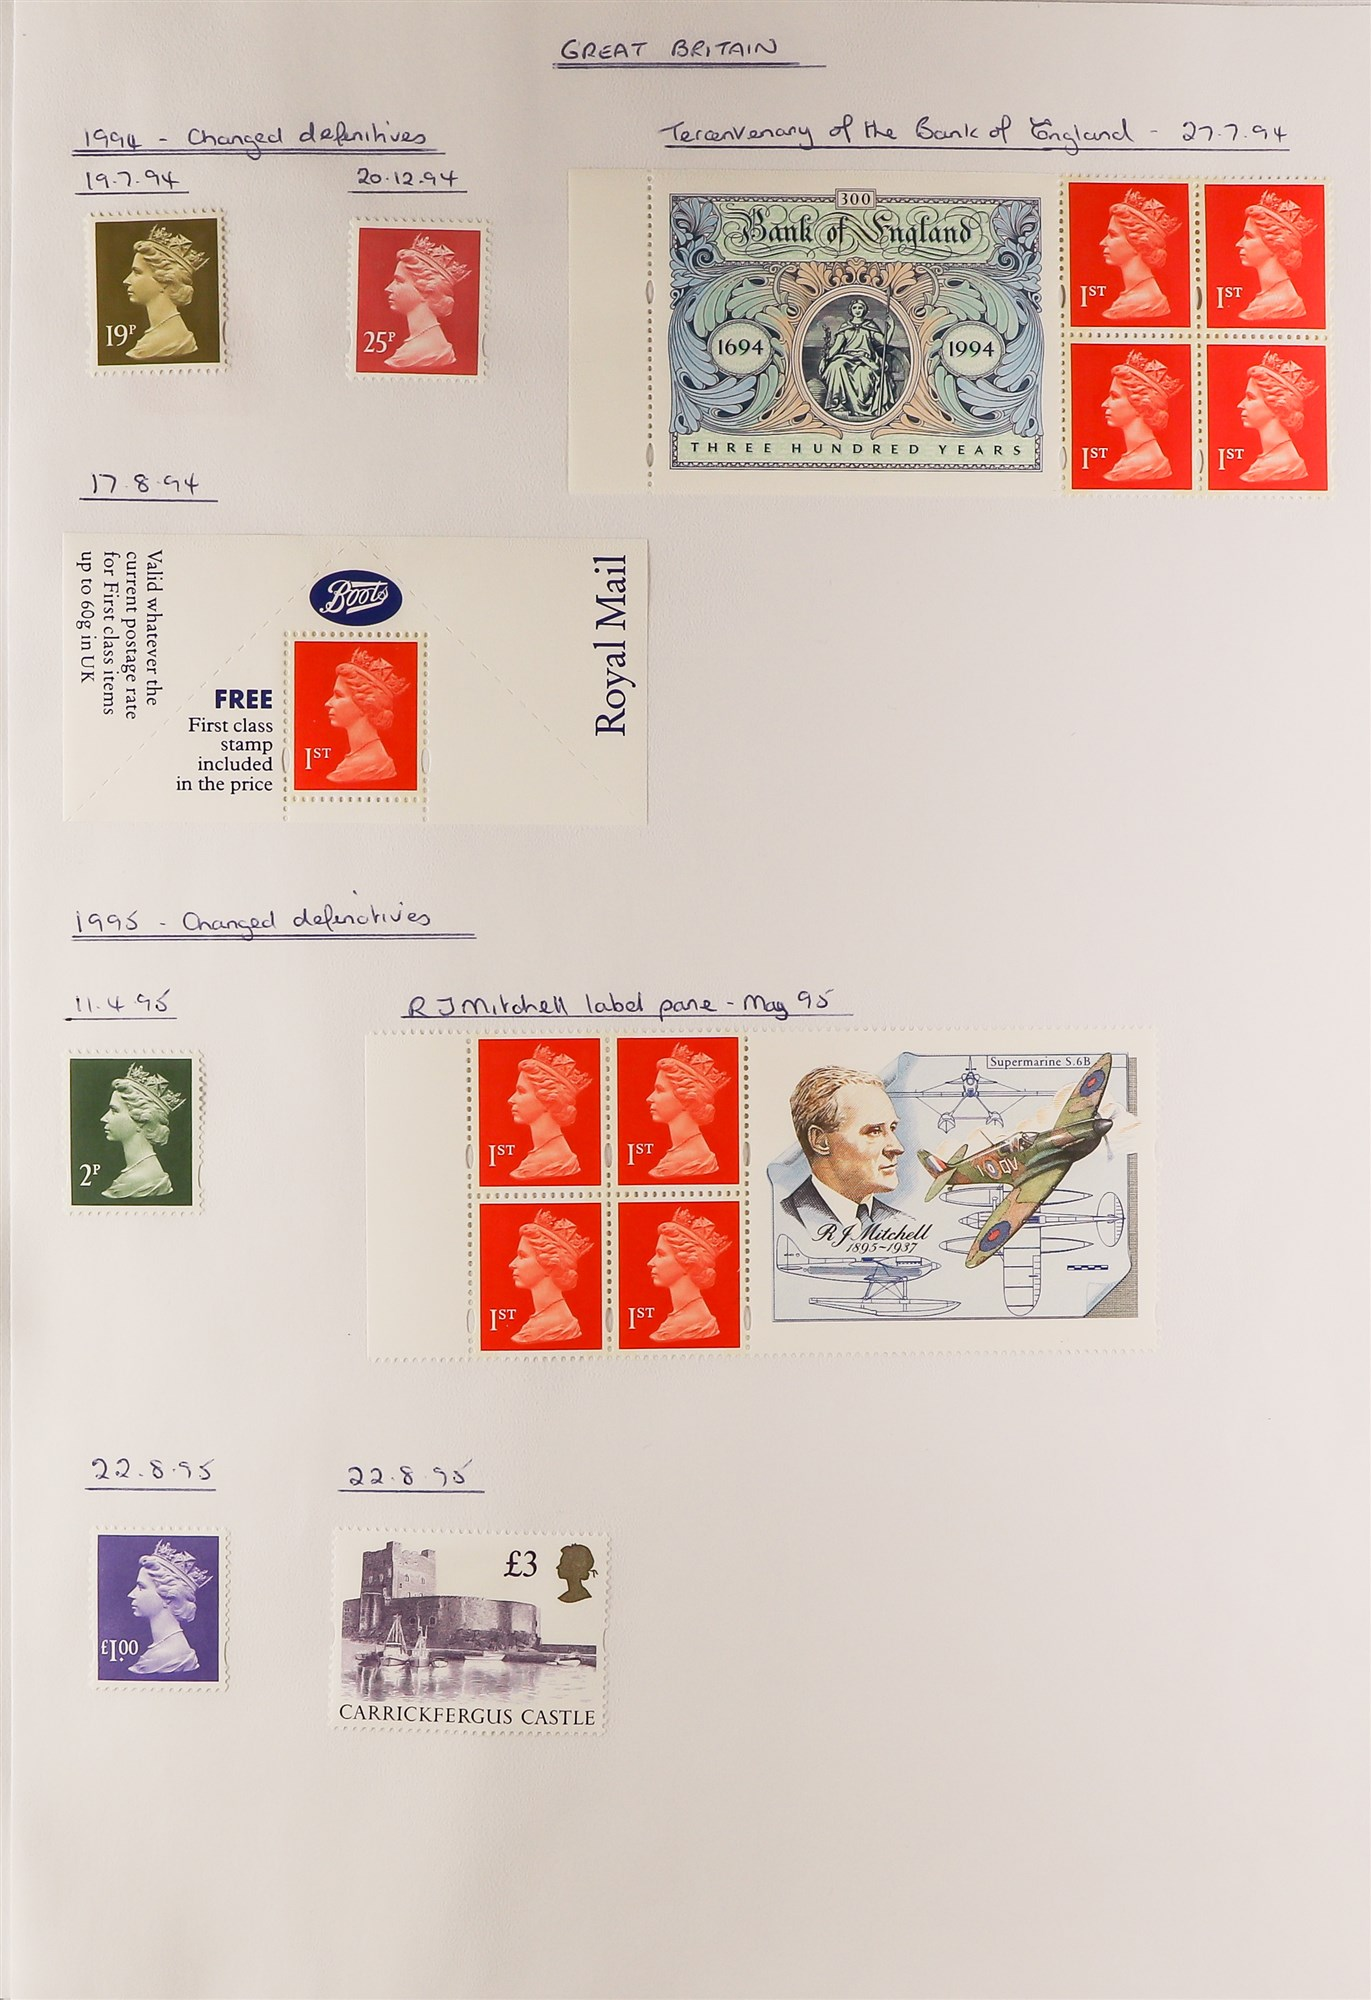 GB.ELIZABETH II 1993 - 2012 COMPREHENSIVE MINT COLLECTION which includes the commemorative stamp